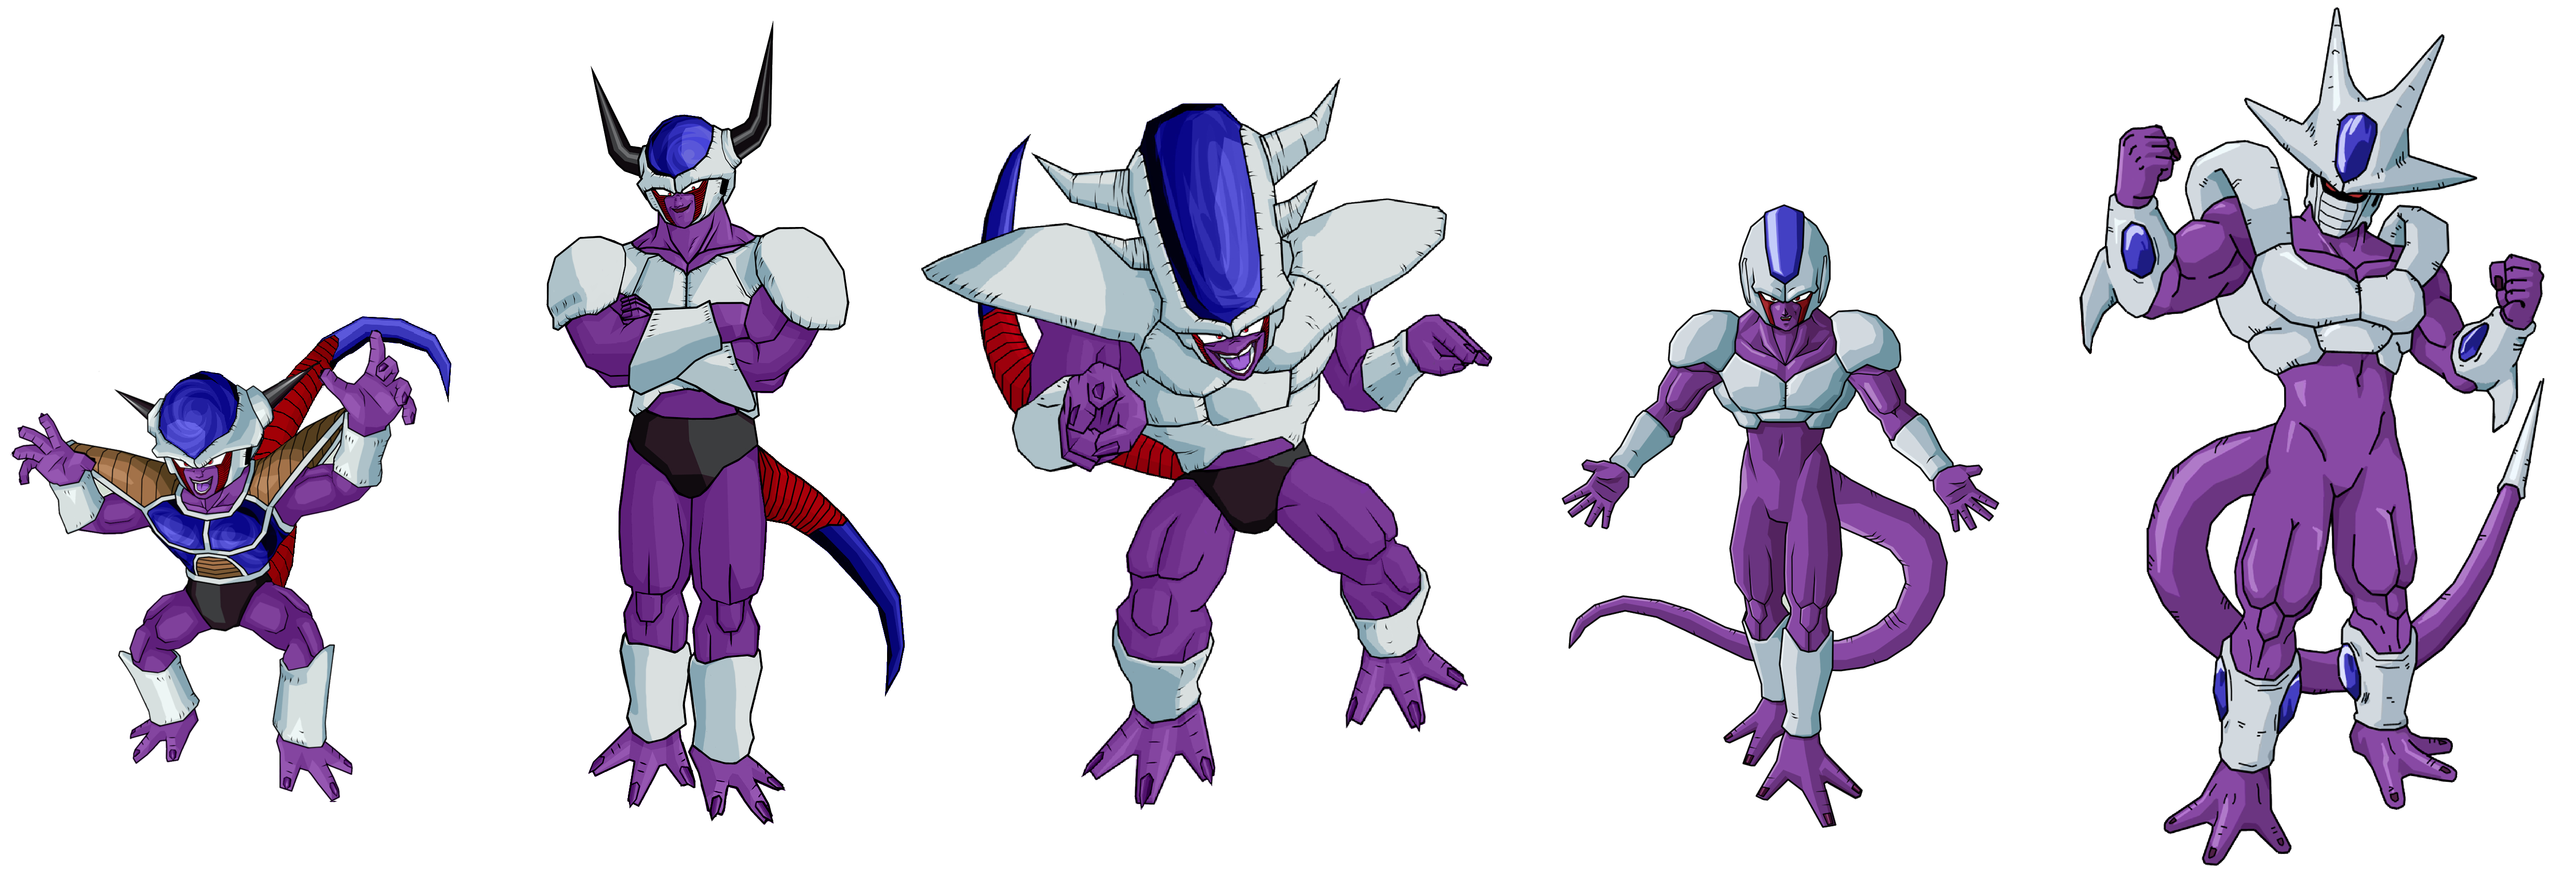 Cooler all forms by legoFrieza on DeviantArt